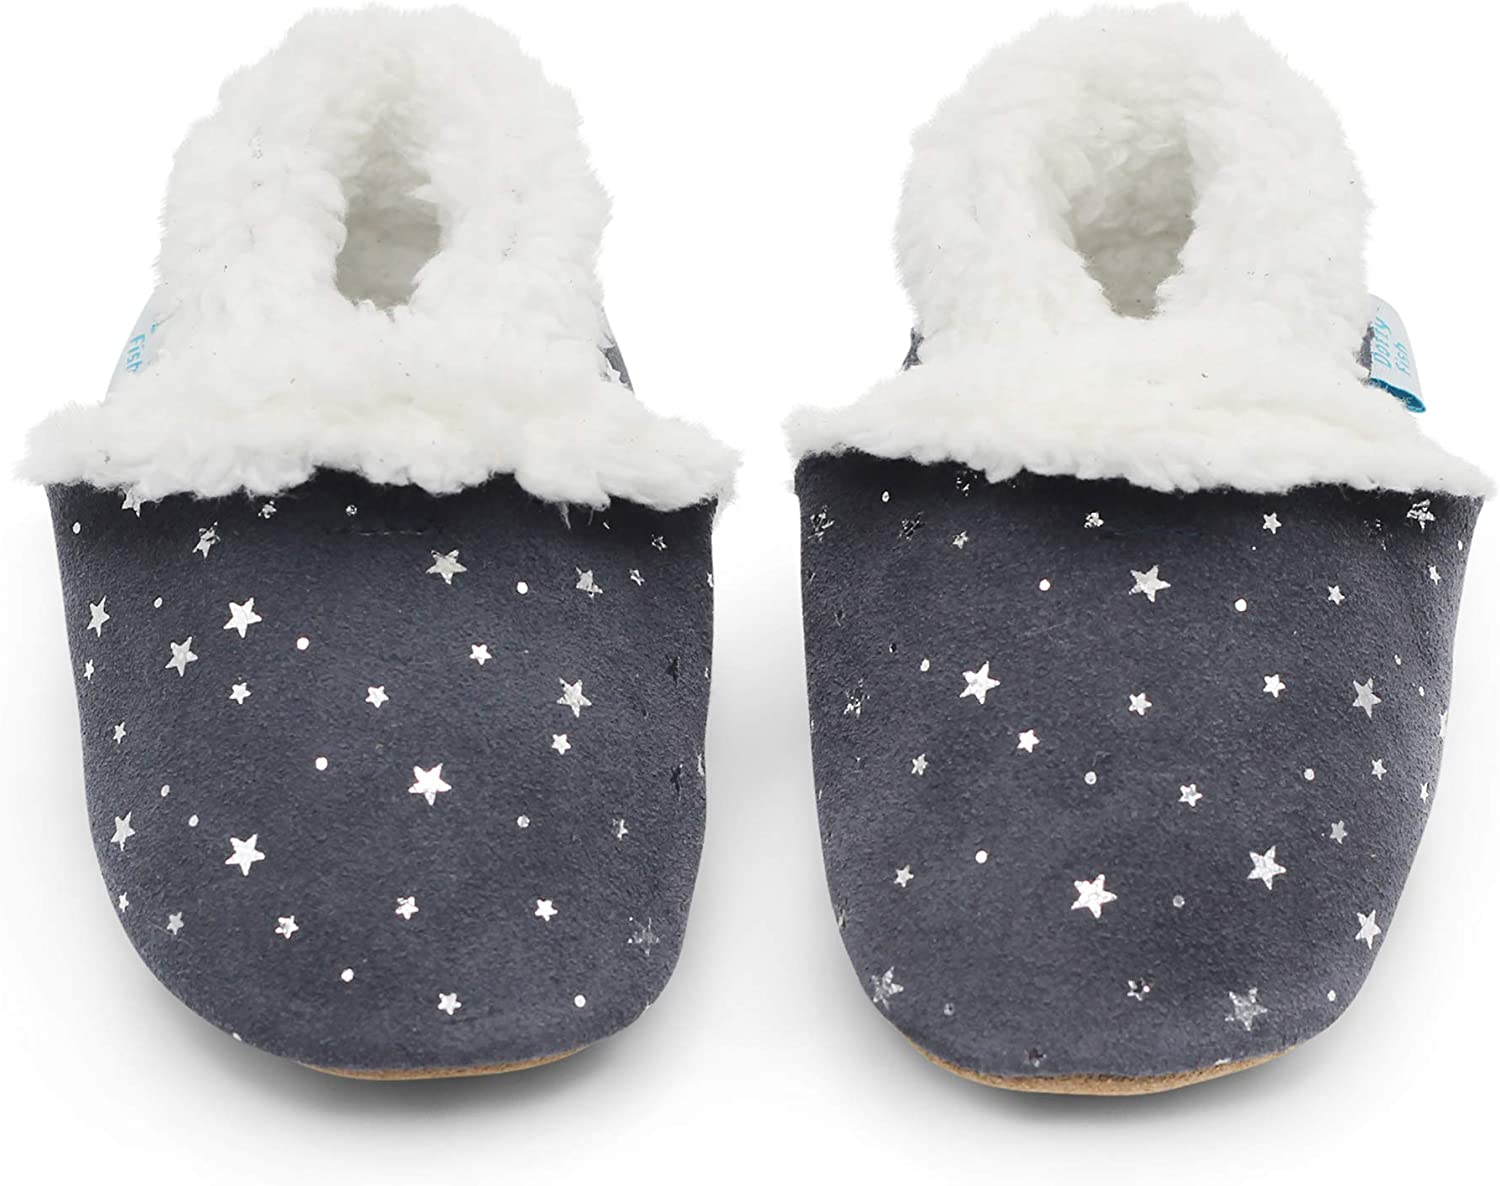 Infant Toddler Shoes Girls. Young Kids Warm Fleece Lined 0-6 Months to 5-6 Years Boys Dotty Fish Suede Baby Slippers Non-Slip Soft Sole